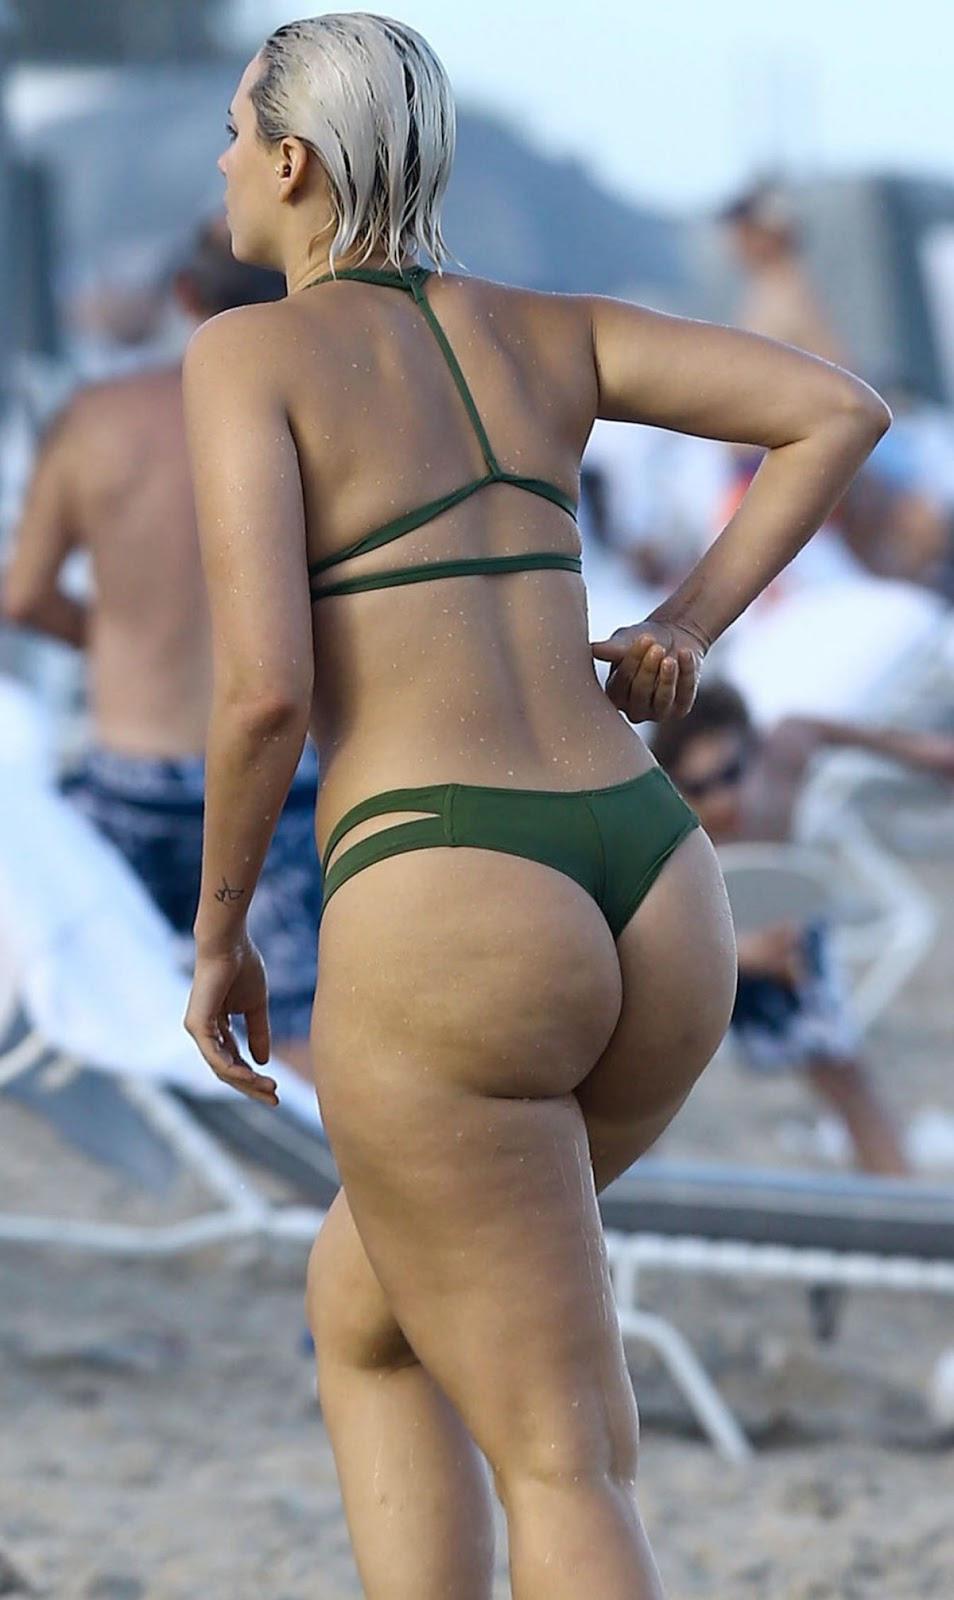 ass fucking from behind